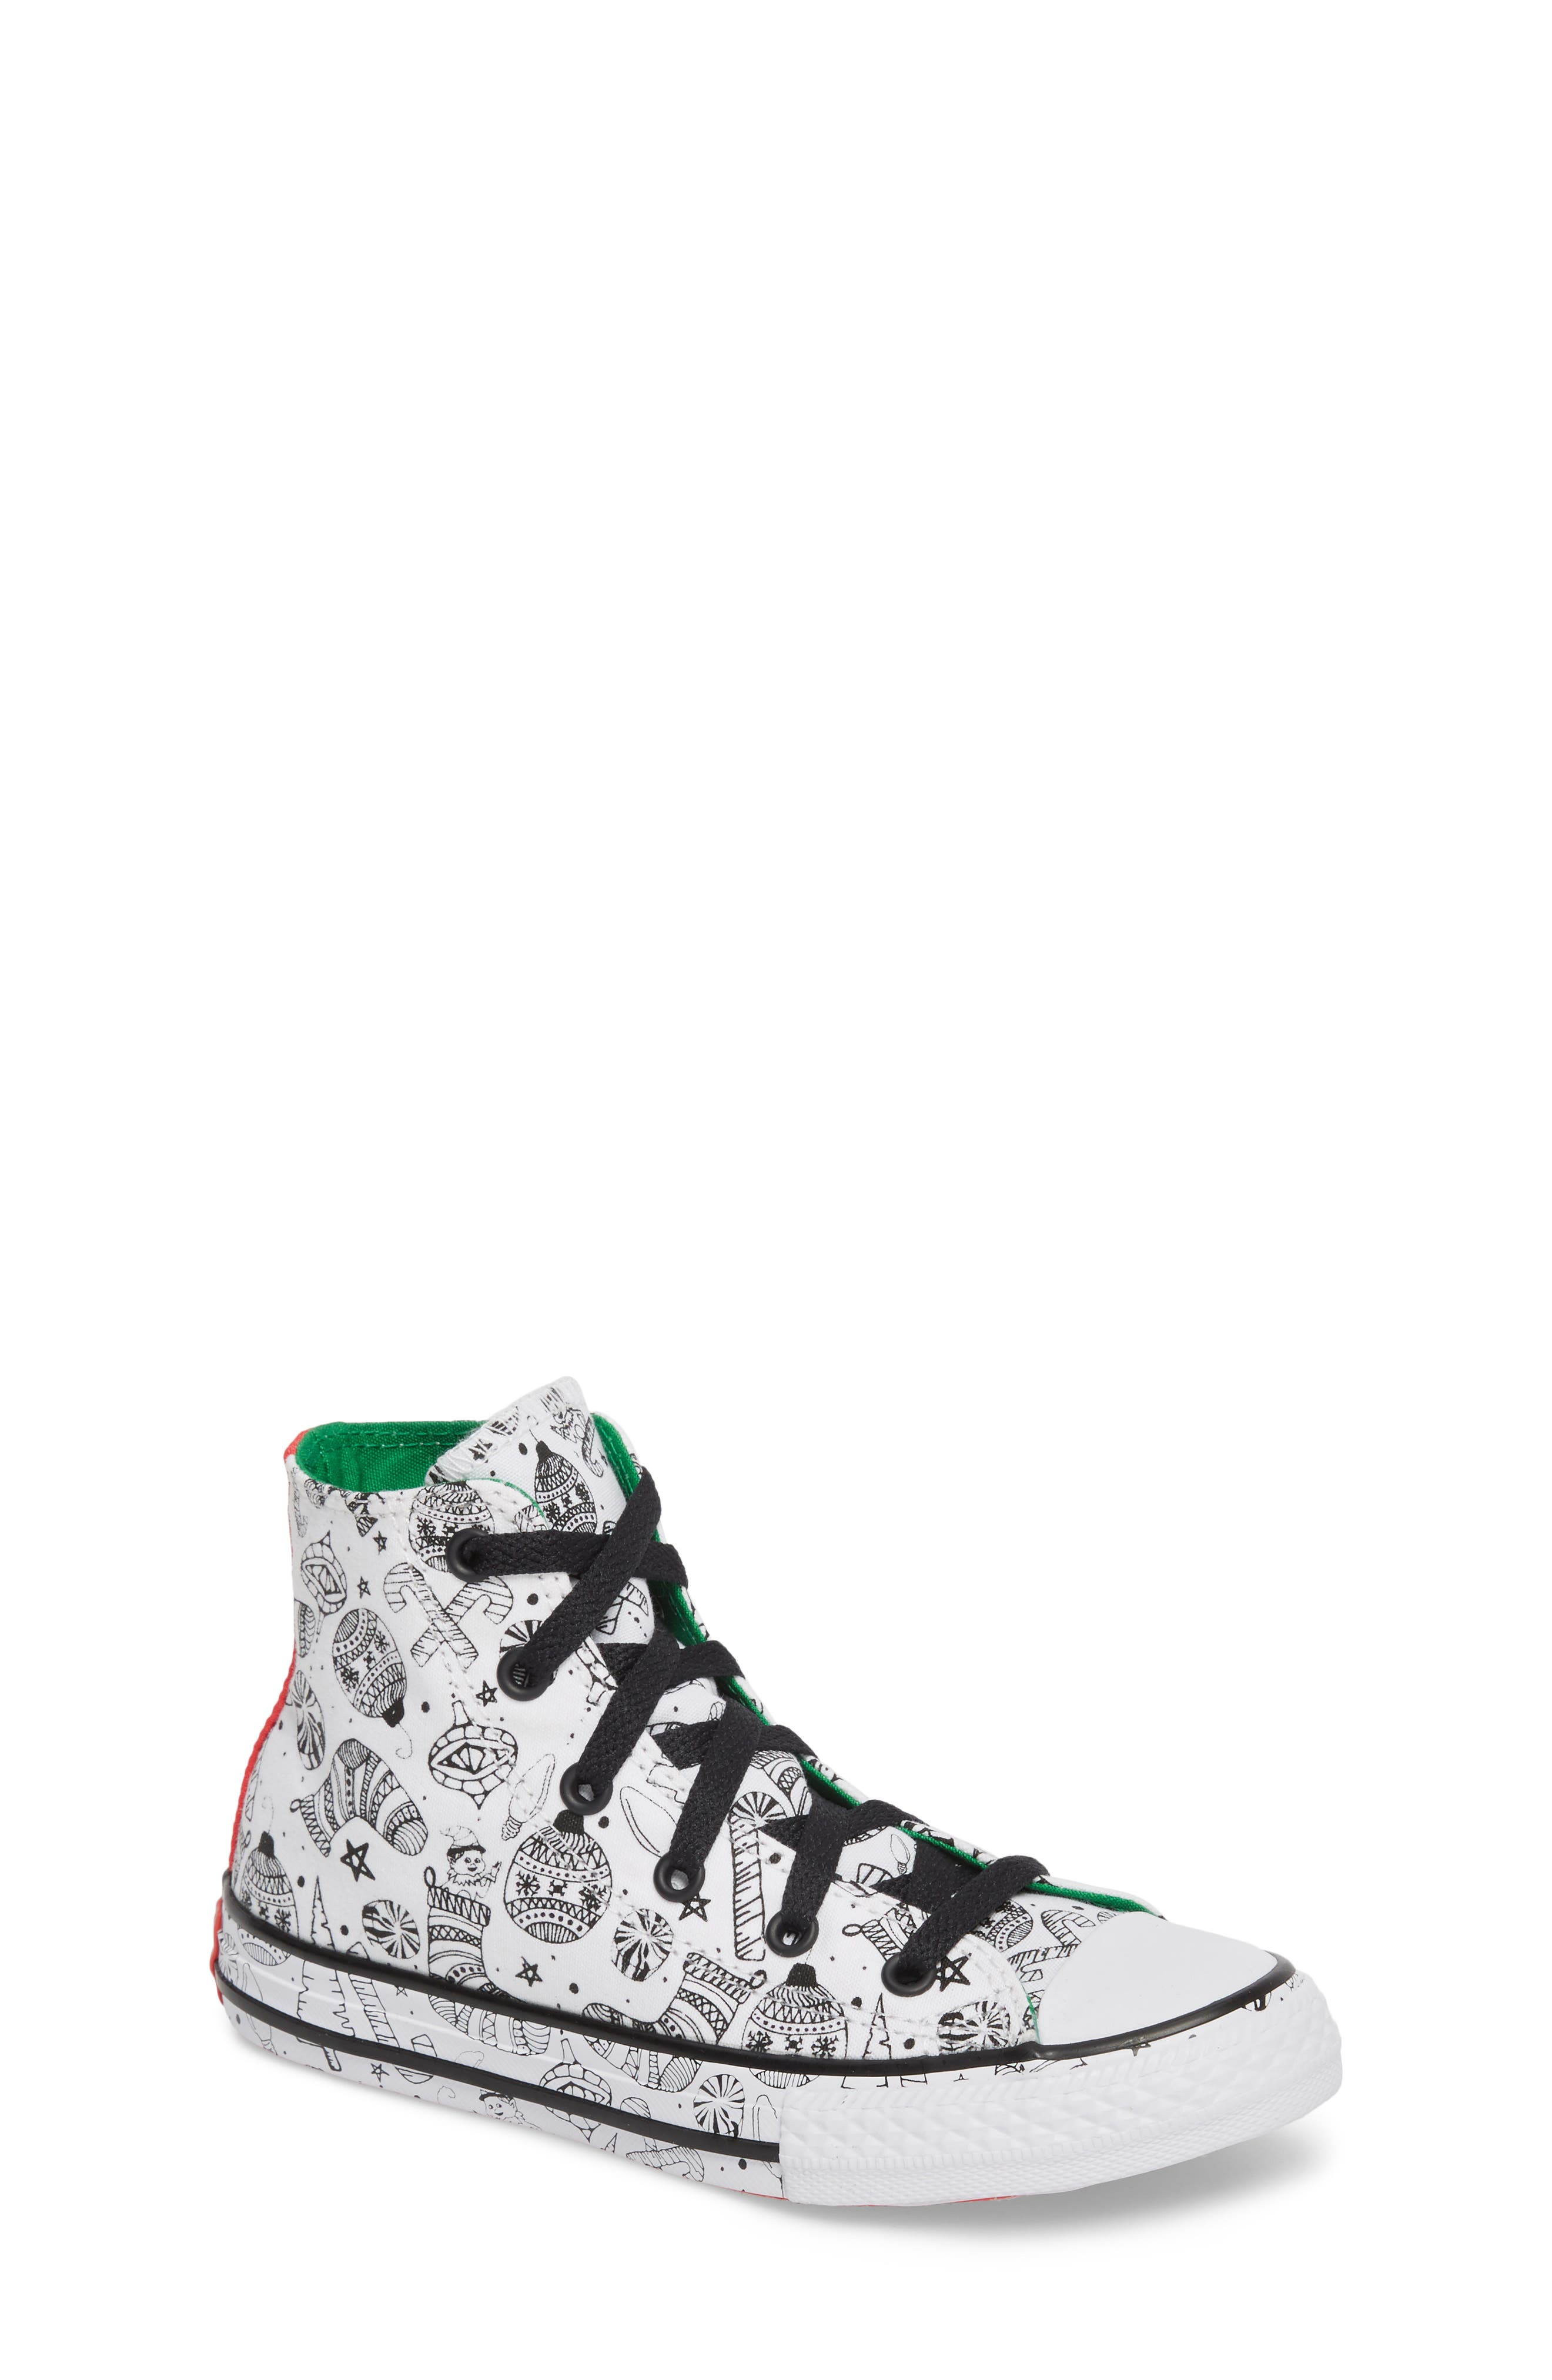 Chuck Taylor<sup>®</sup> All Star<sup>®</sup> Christmas Coloring Book High Top Sneaker,                         Main,                         color,